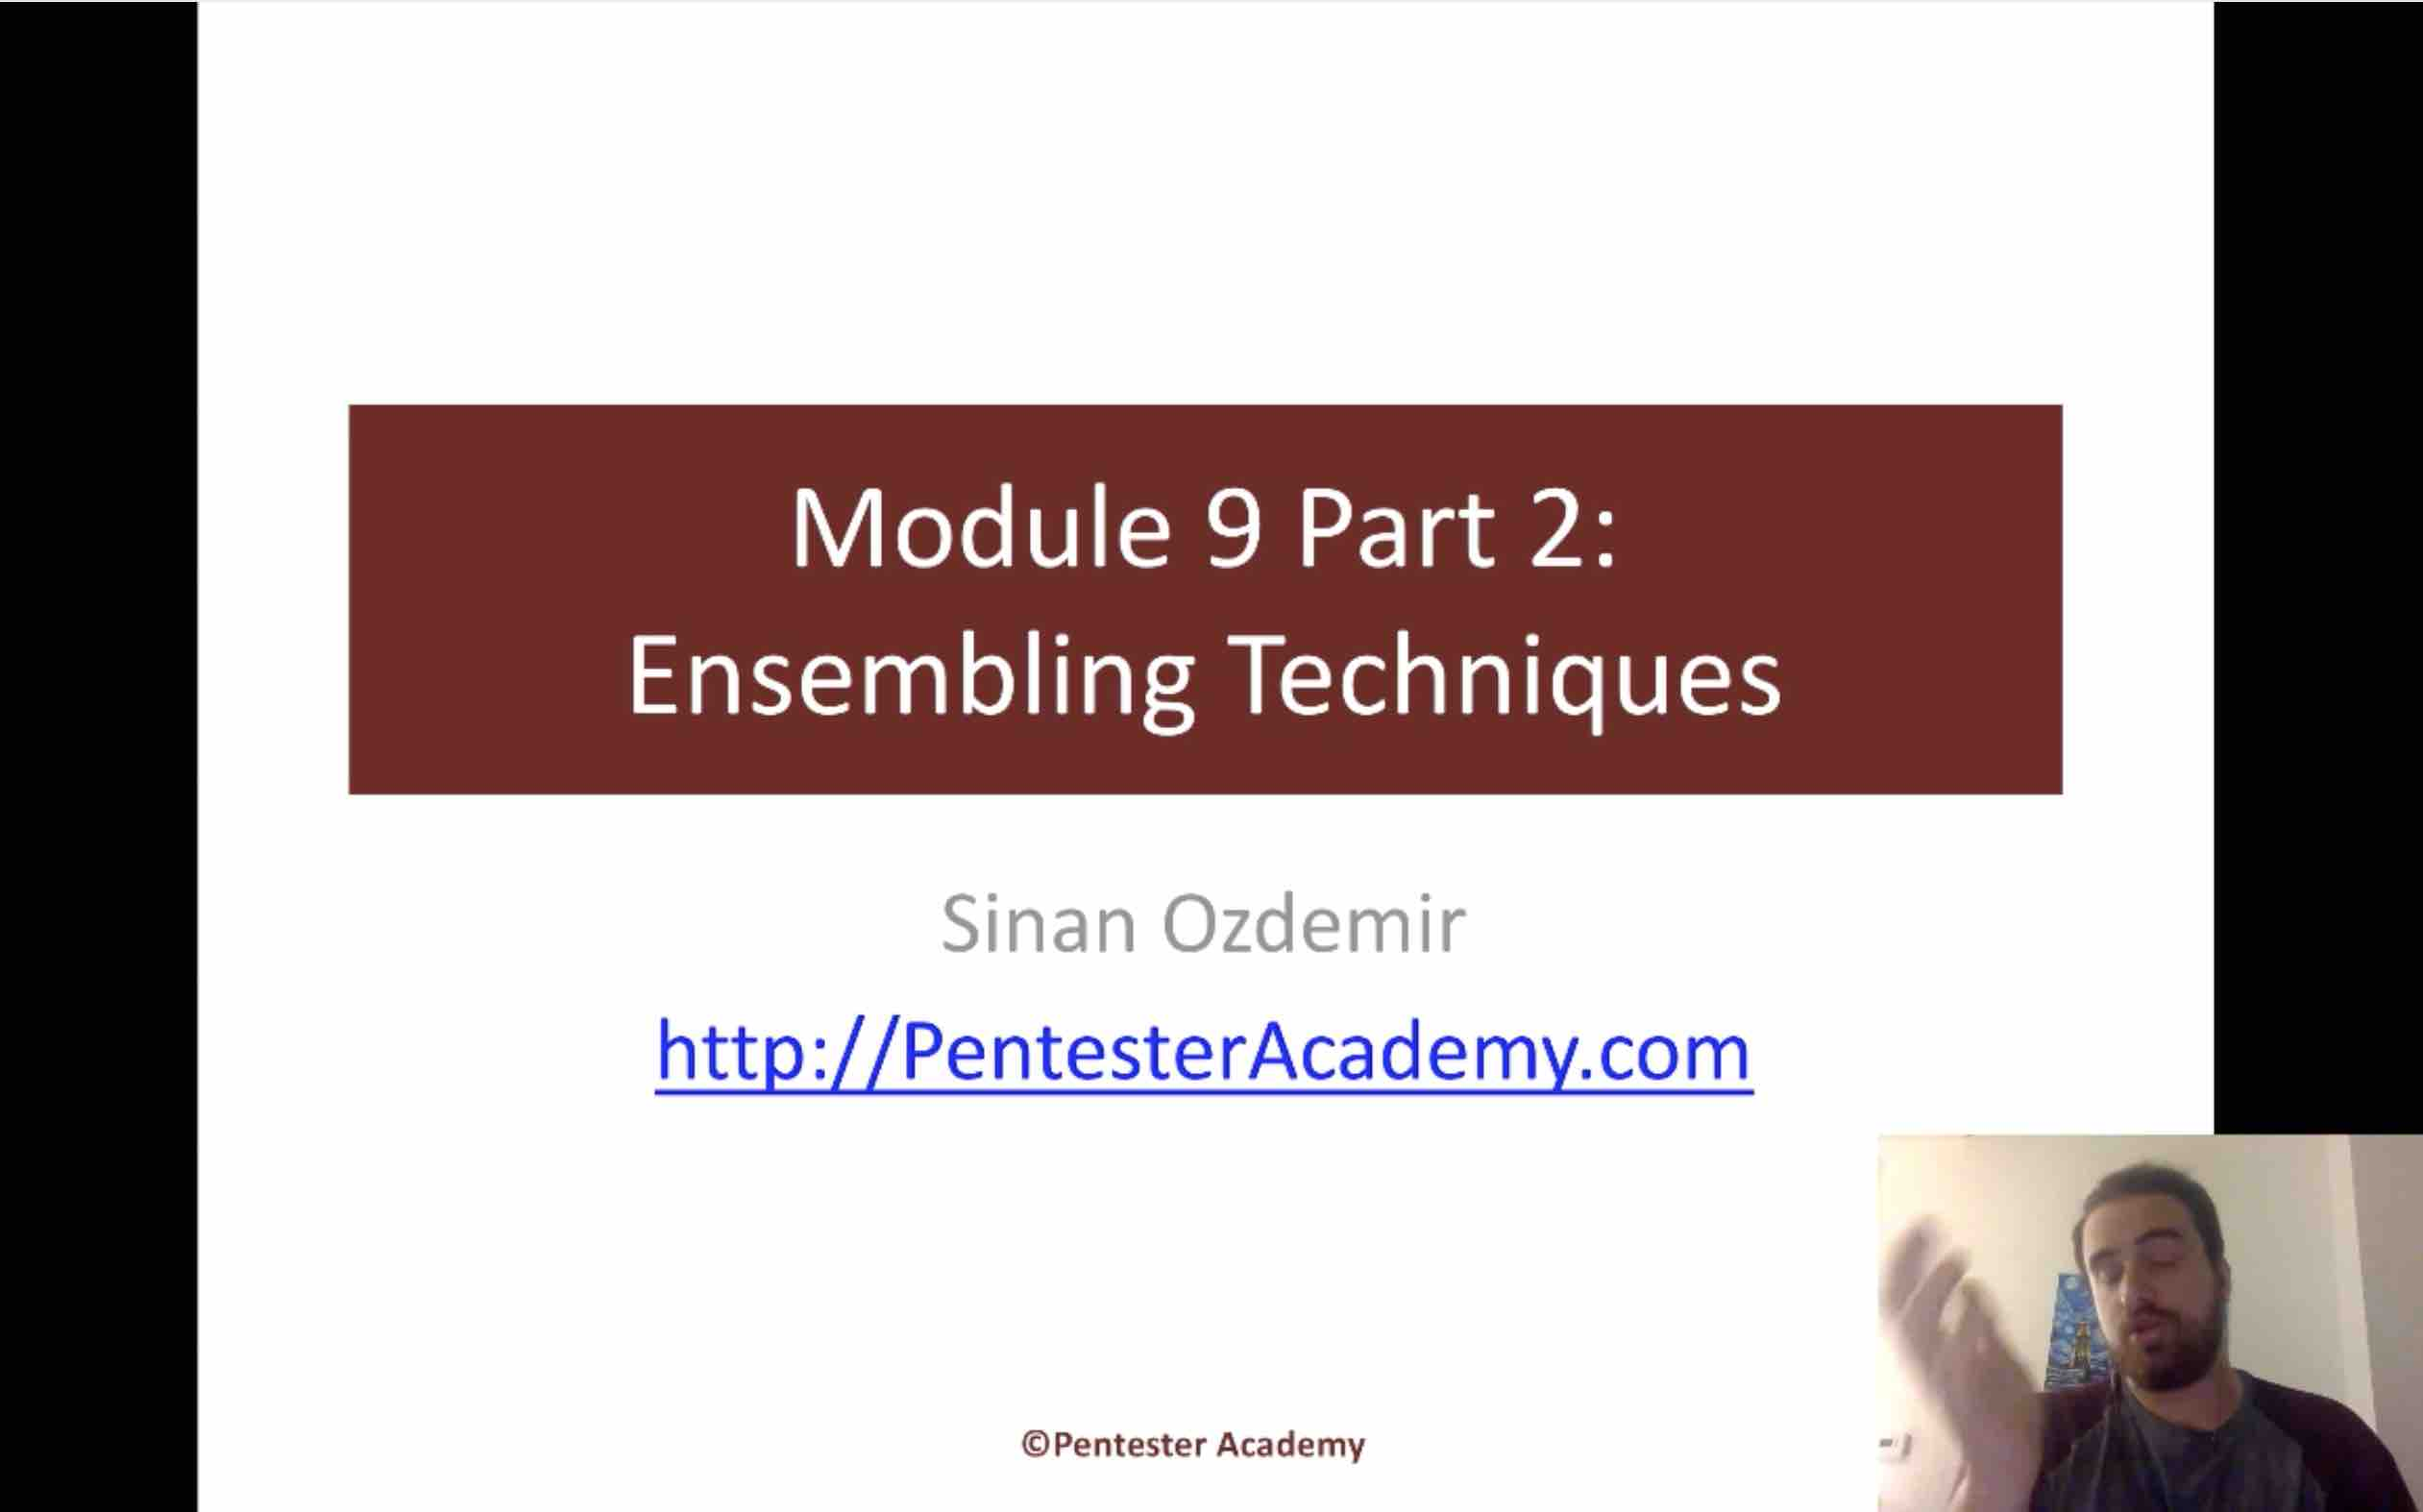 Module 9: Ensembling Techniques Part 2